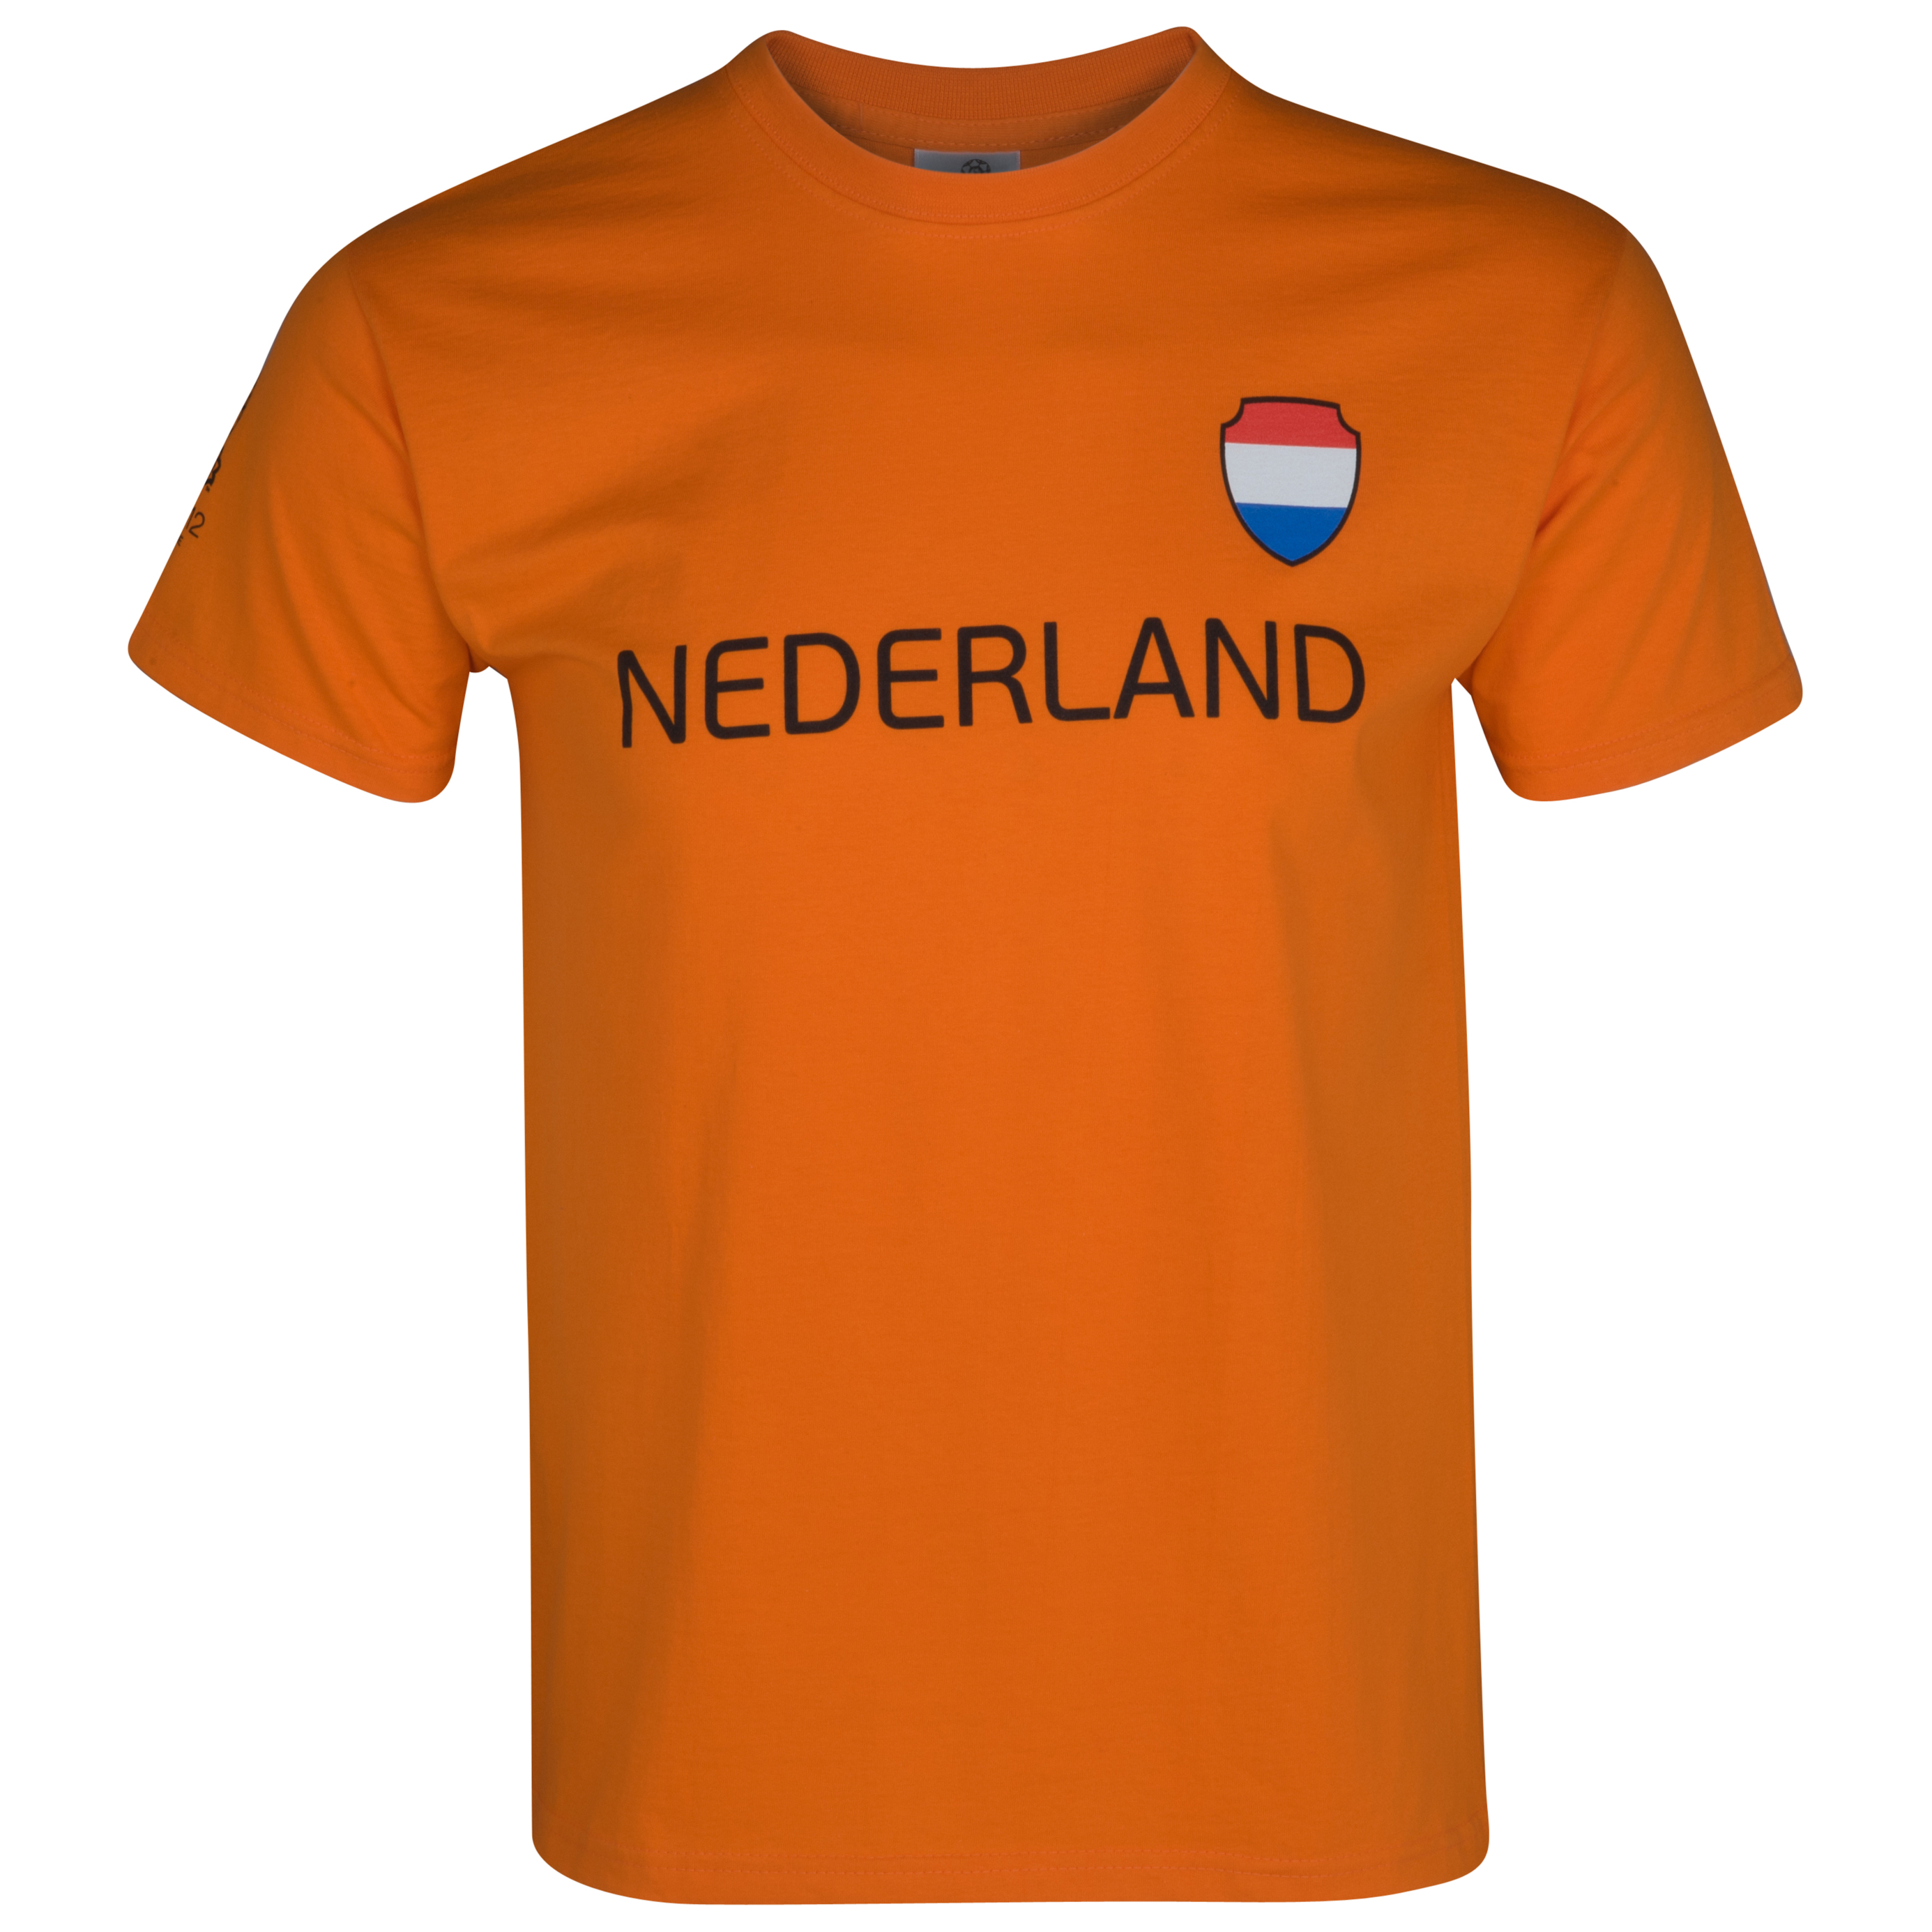 Euro 2012 Holland T-Shirt - Orange/Black